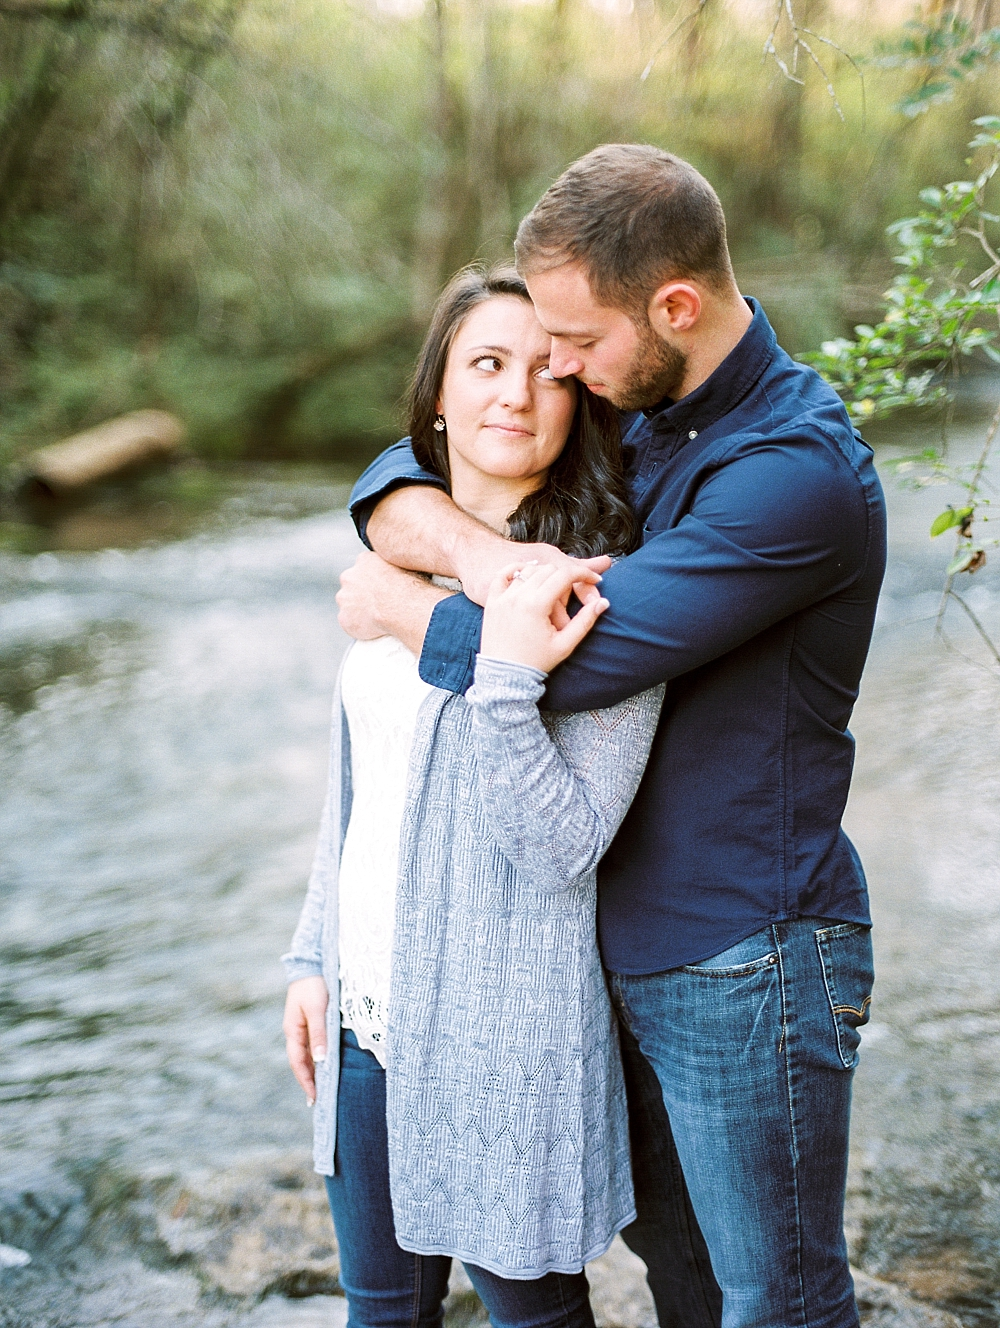 JuicebeatsPhotography_KnoxvilleEngagement_Kristina&Ben_0040.jpg